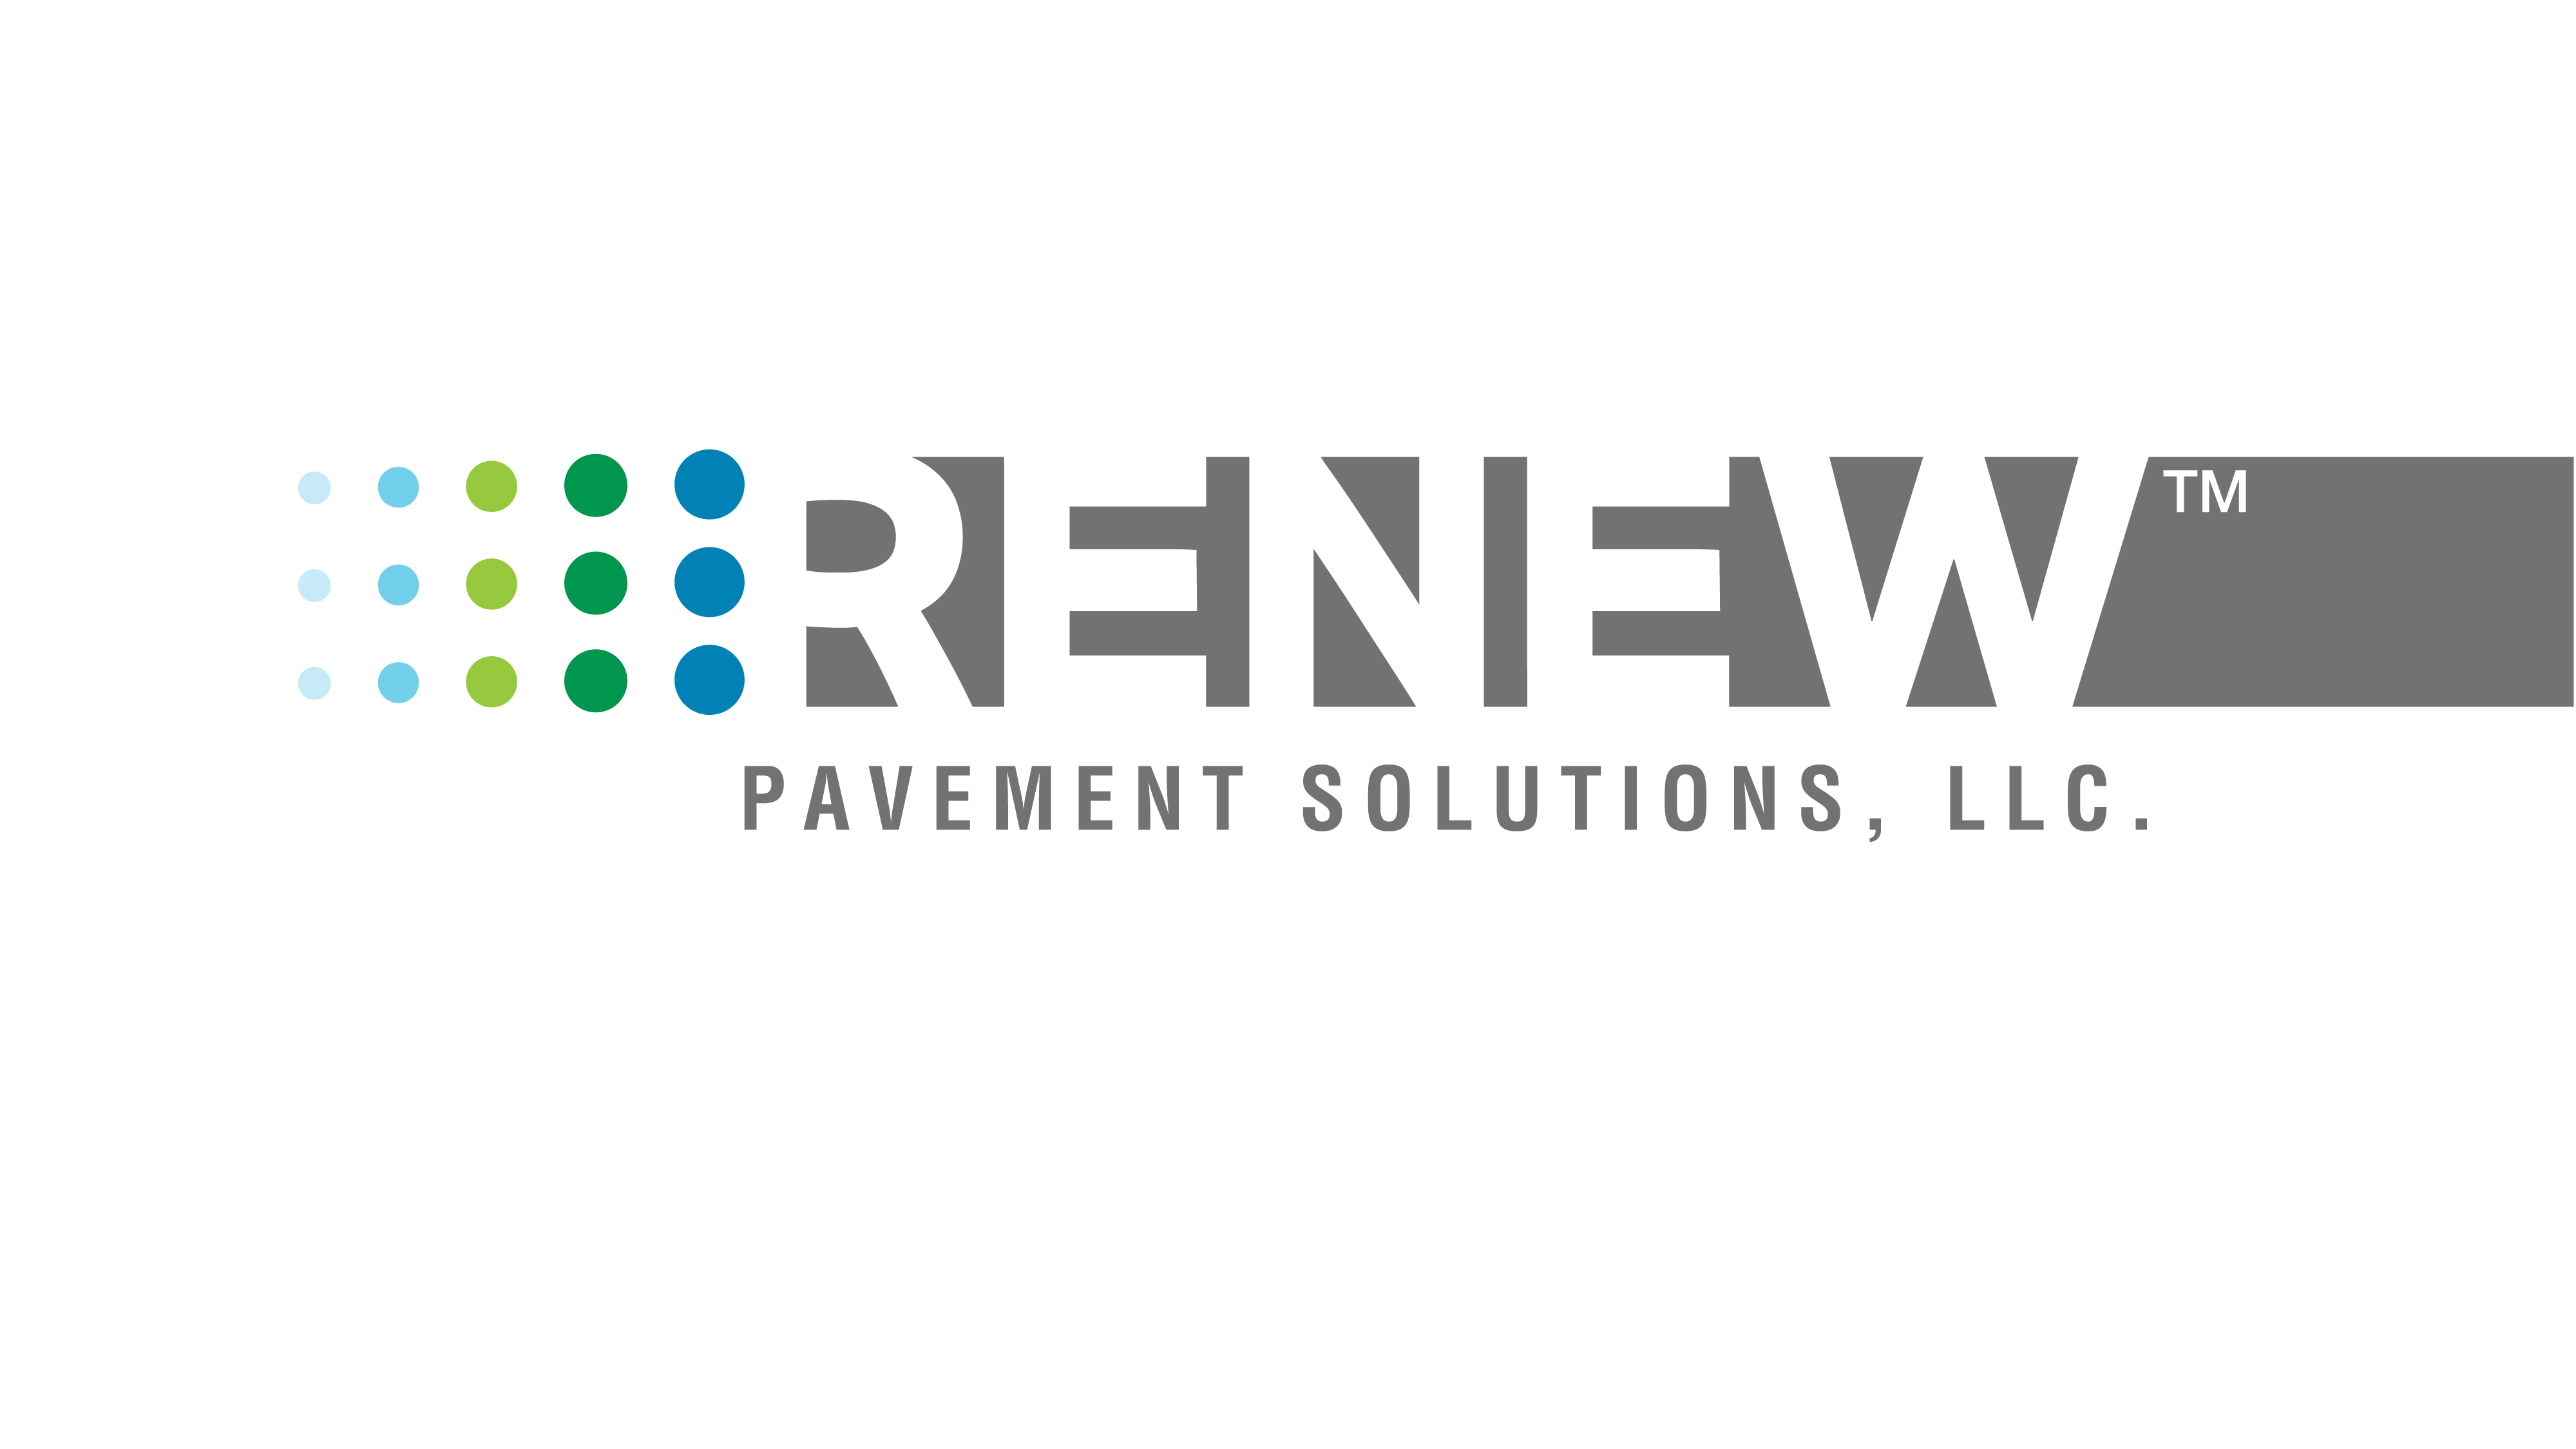 Renew Pavement Solutions, LLC